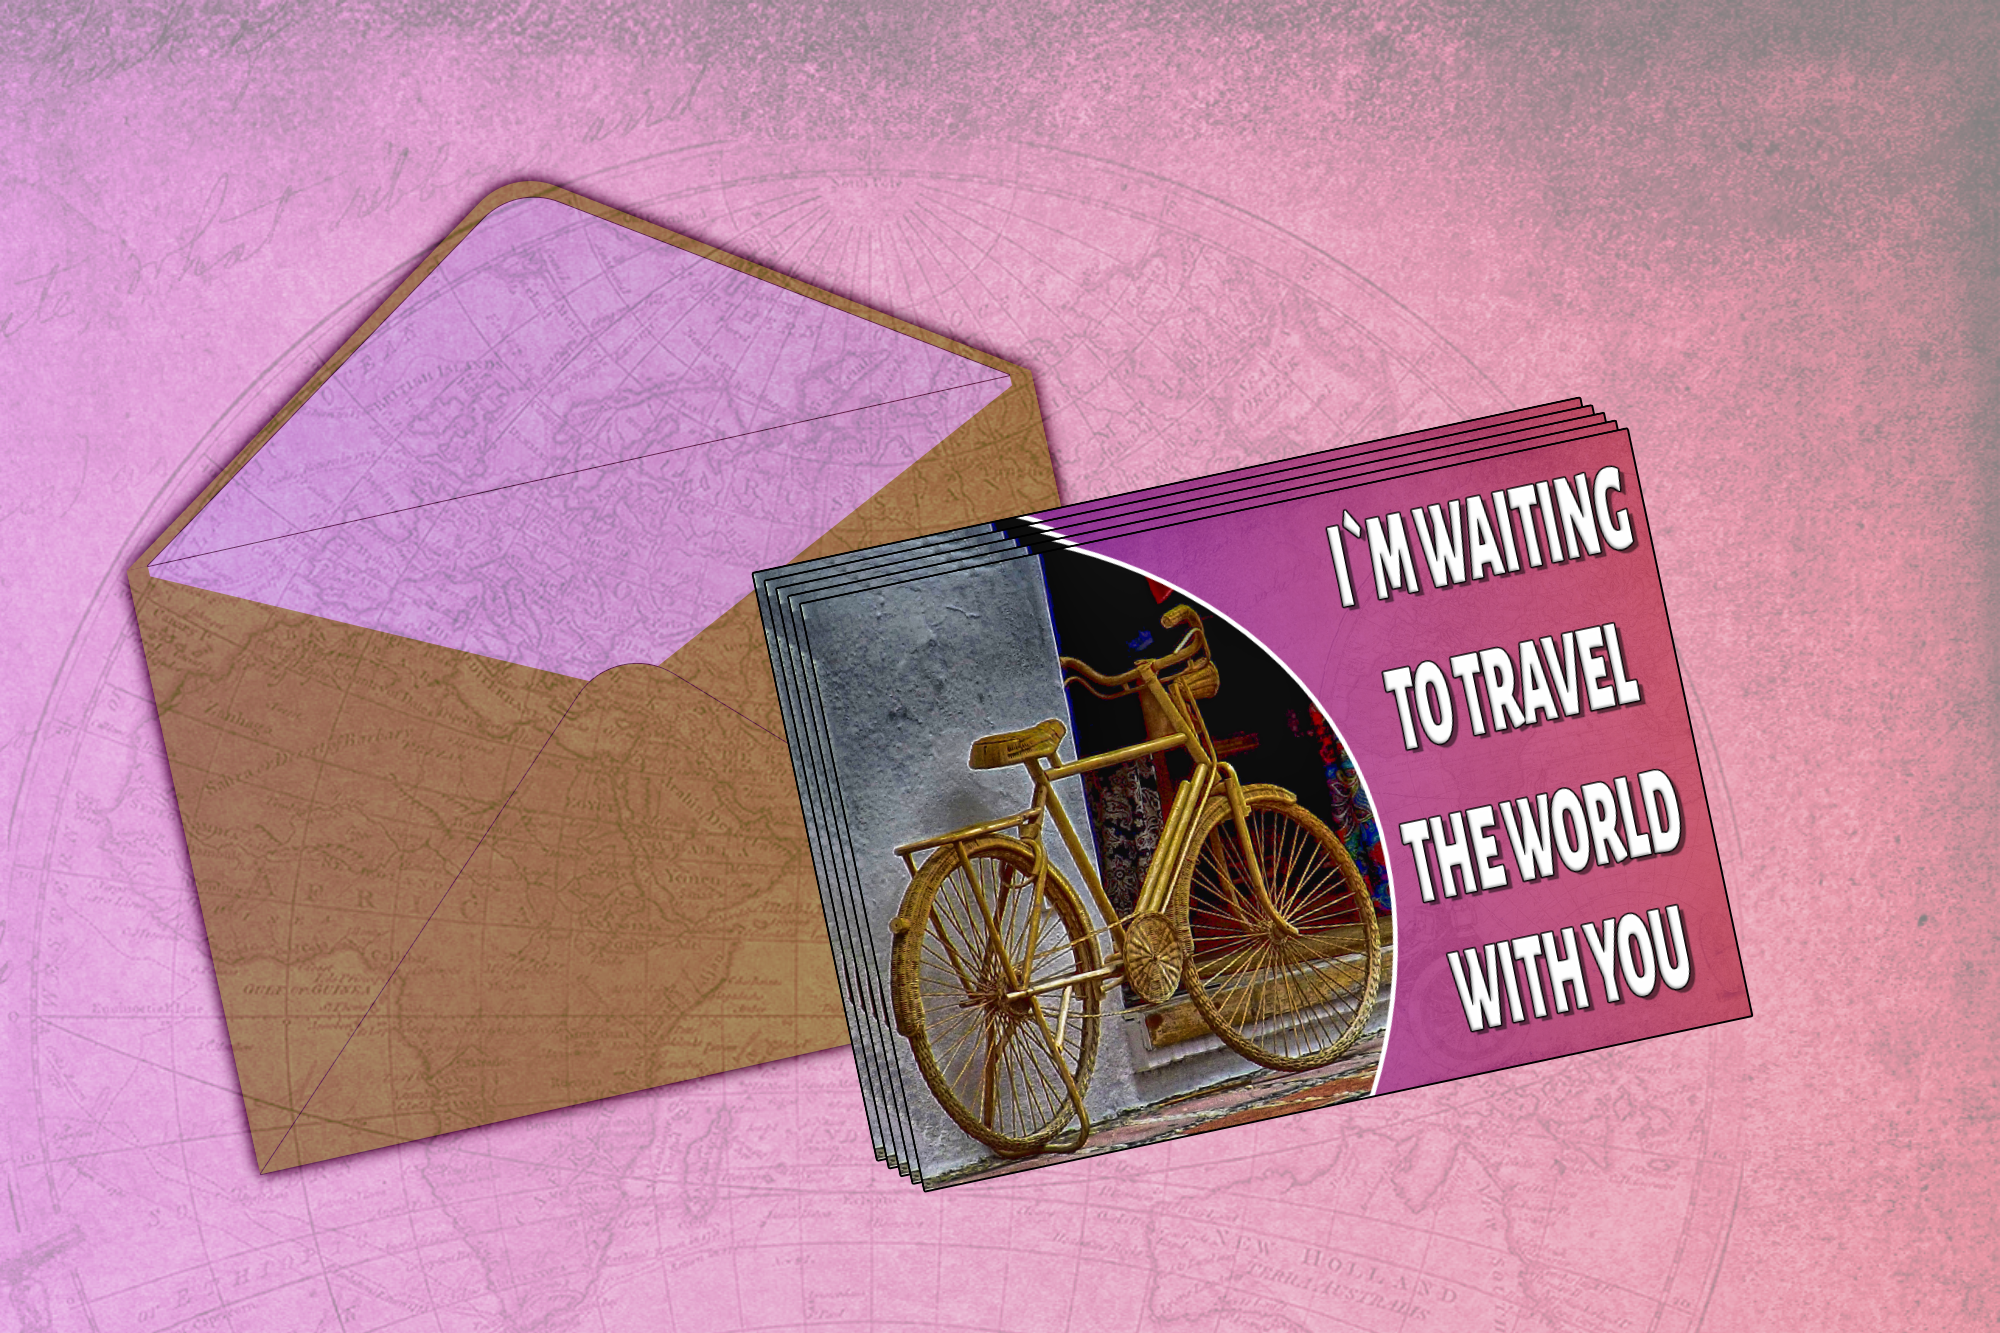 I am Waiting To Travel The World With You - Postcard example image 1